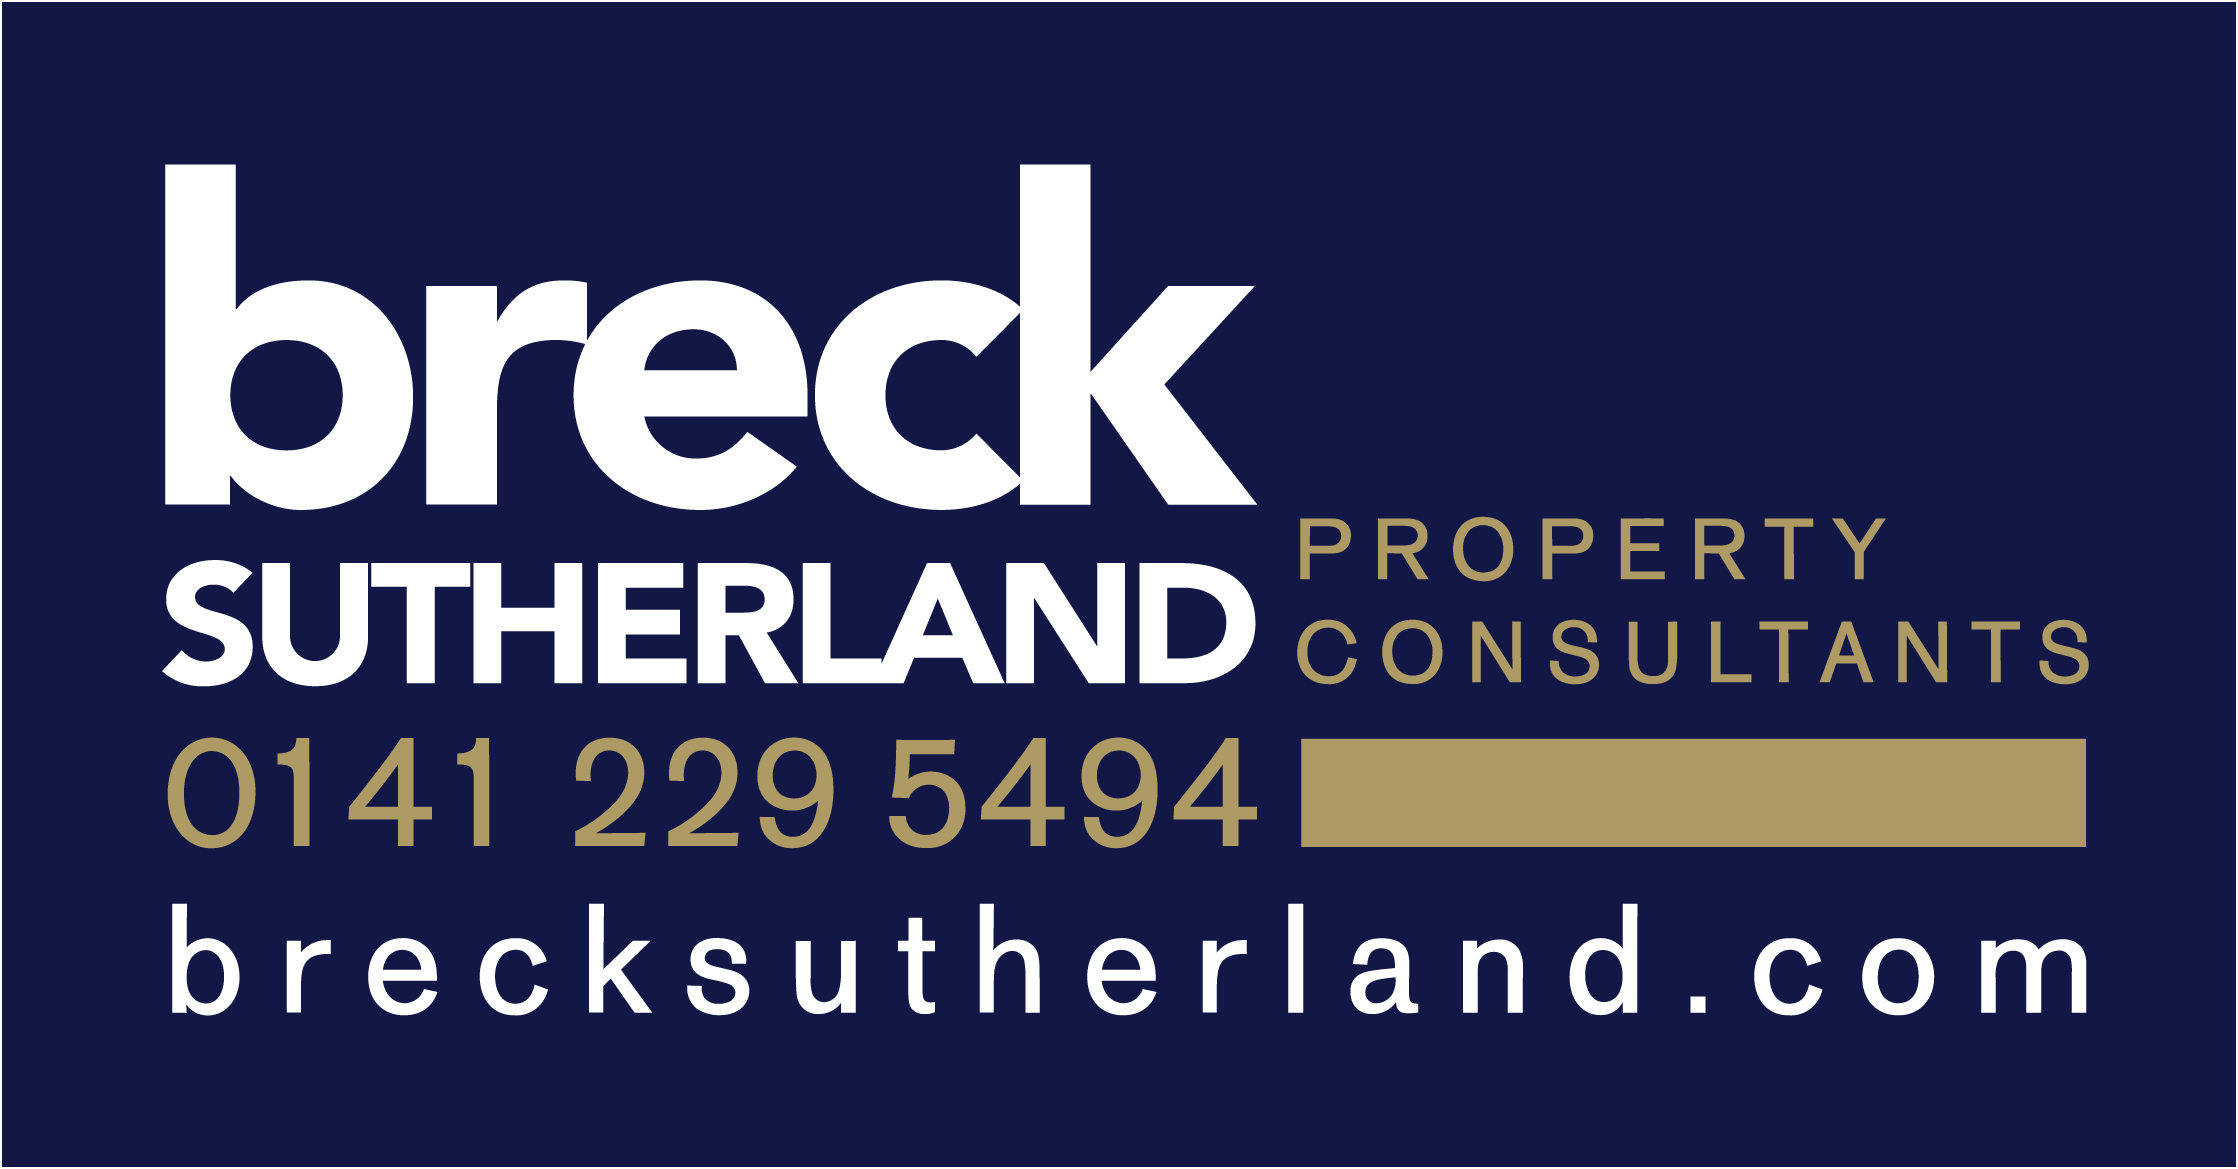 Breck Sutherland Property Consultants